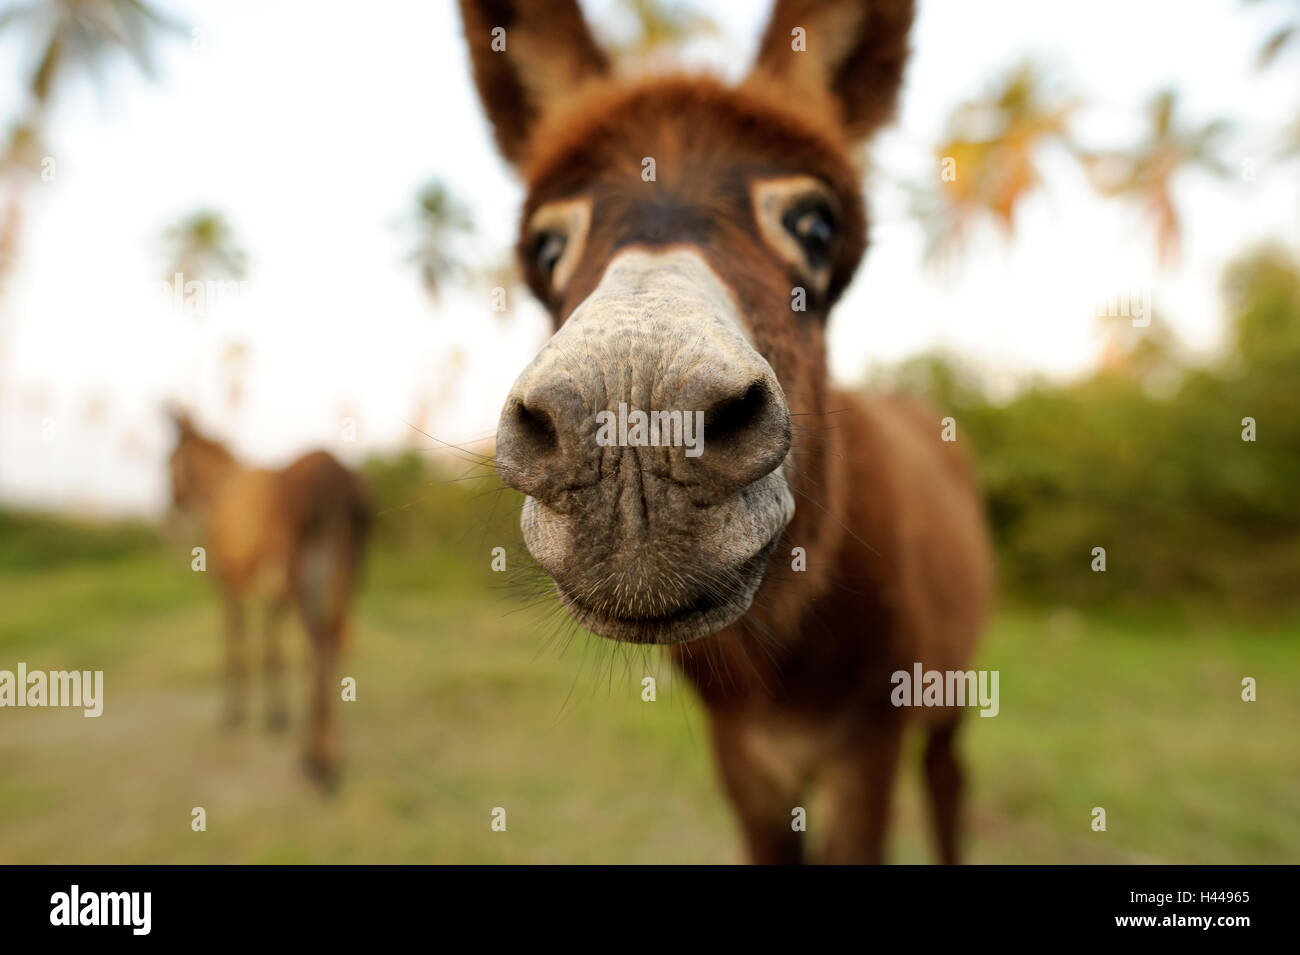 Donkey is a cute funny baby donkey sticking his nose right in your face. - Stock Image